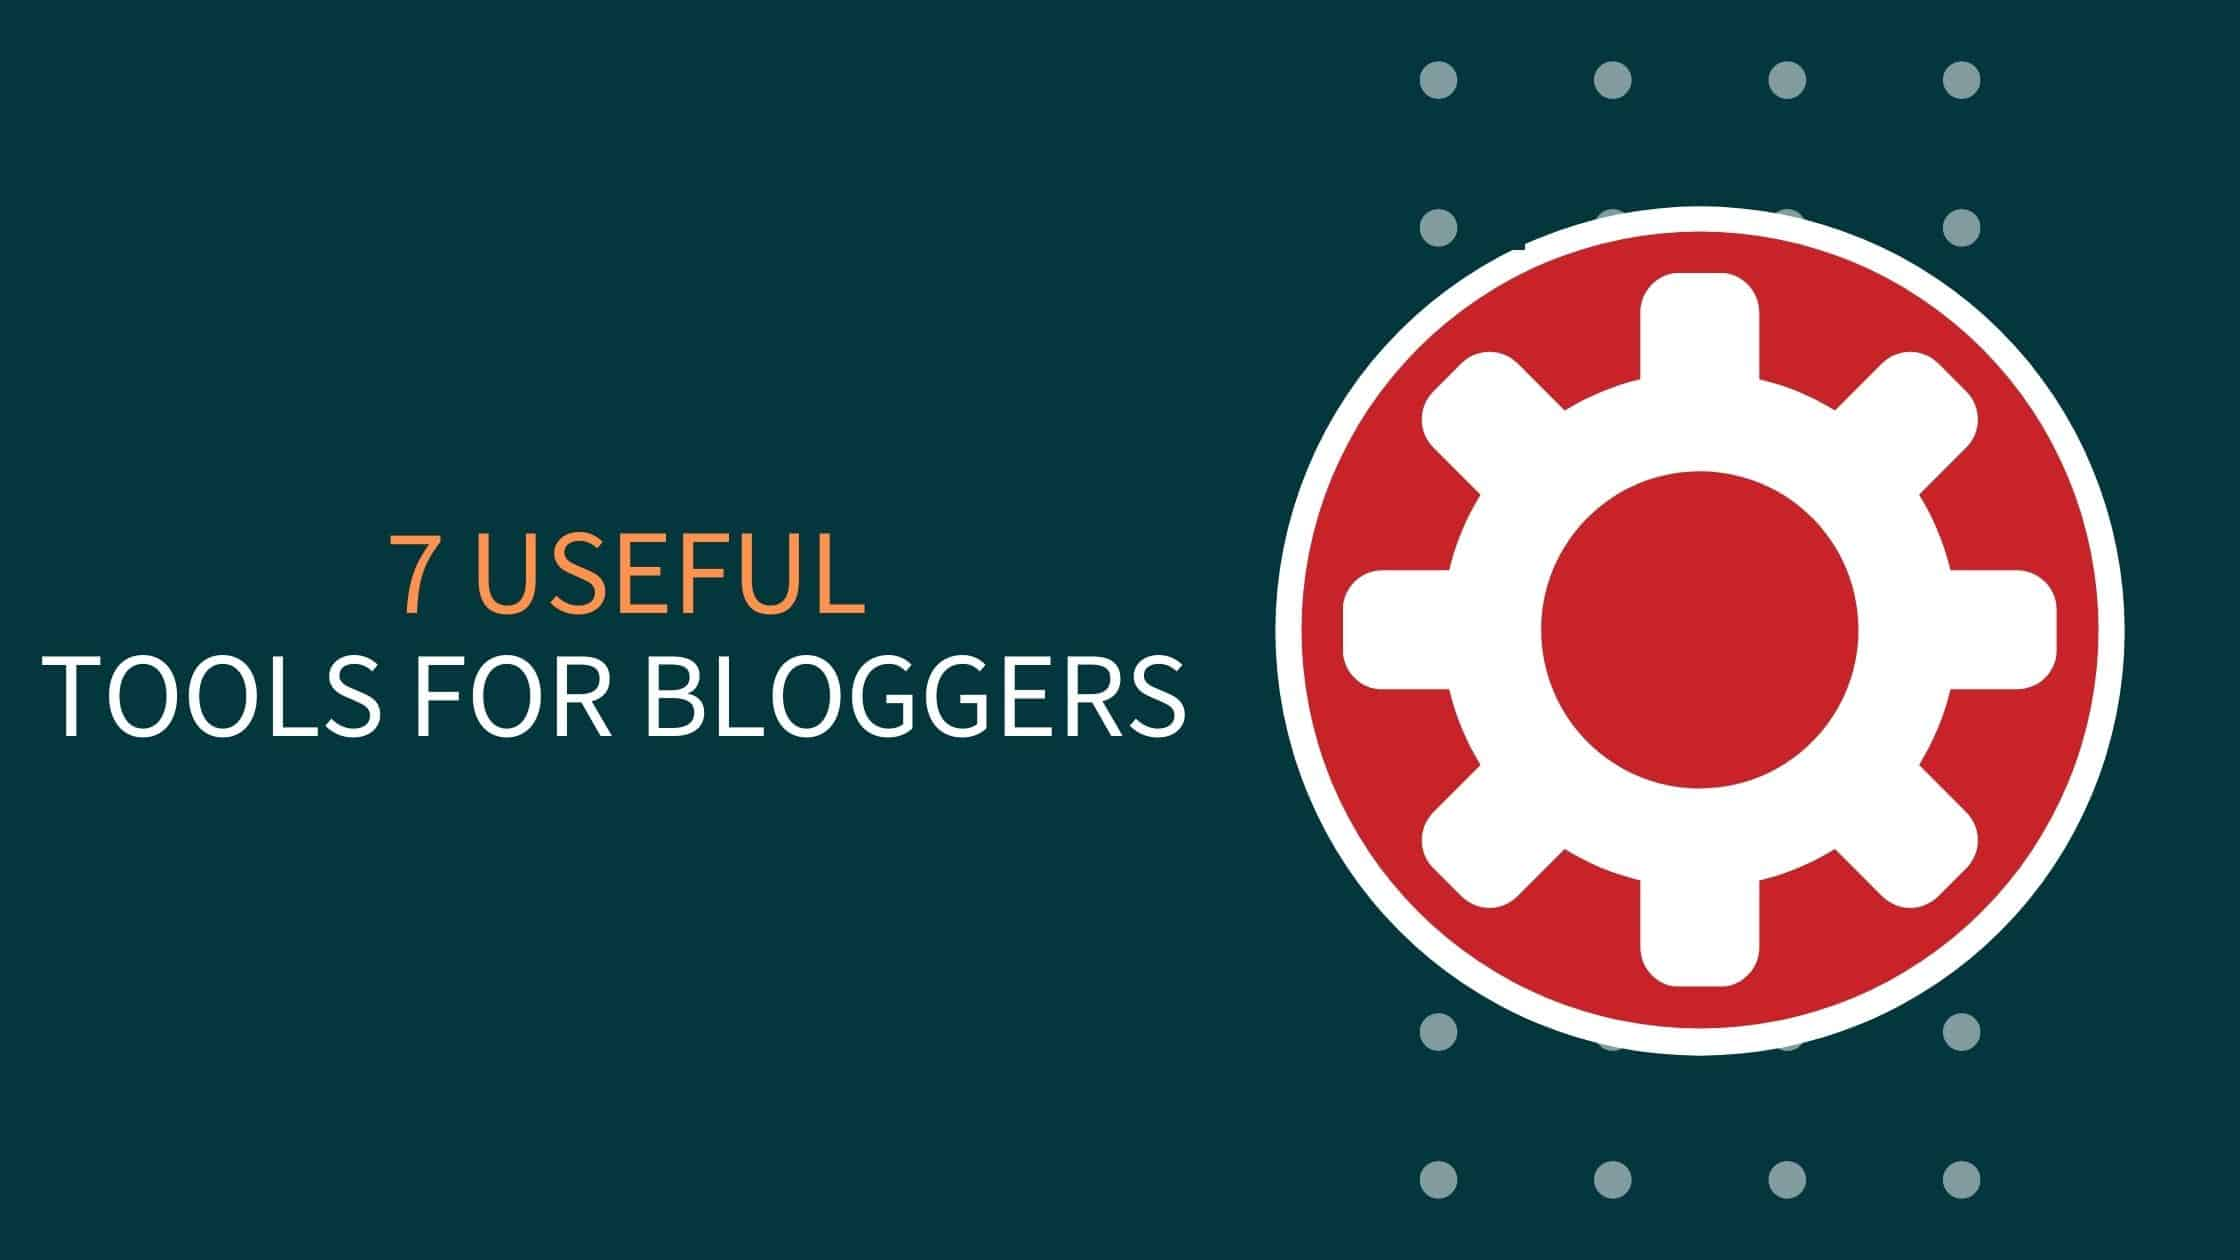 7 Most Useful Tools For Bloggers To Complete Work In No Time